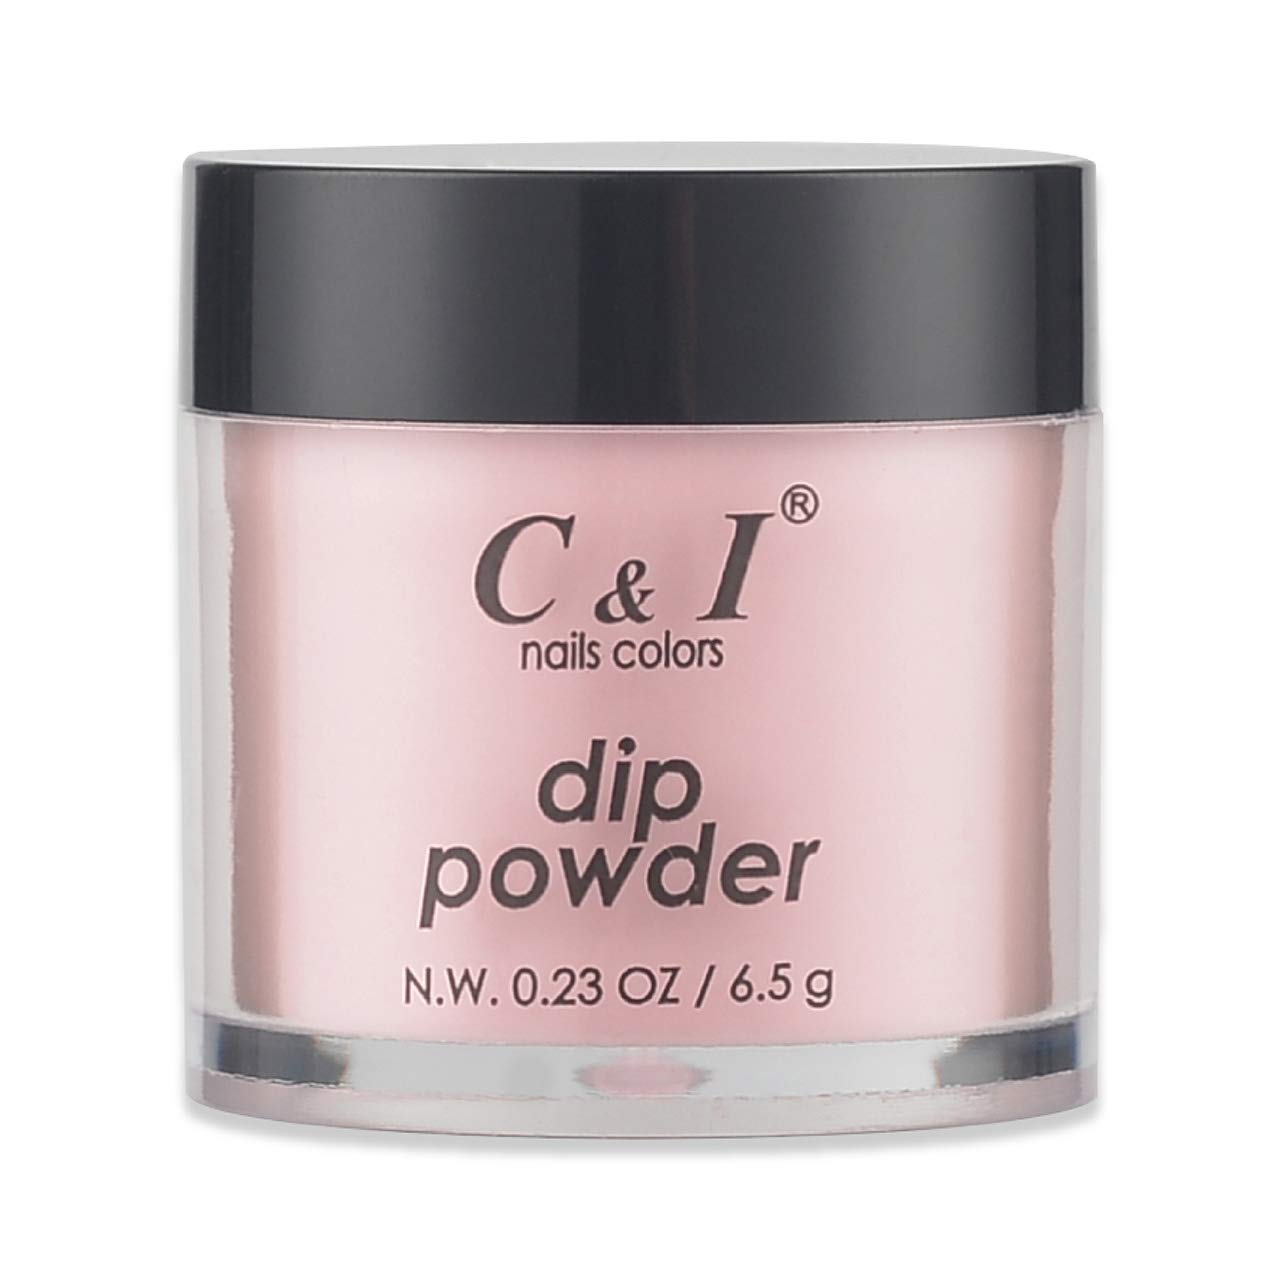 C & I Dipping Powder, Nail Colors, Gel Effect, Color # 8 Salmon, 0.23 oz, 6.5 g, naked color system (1 pc)